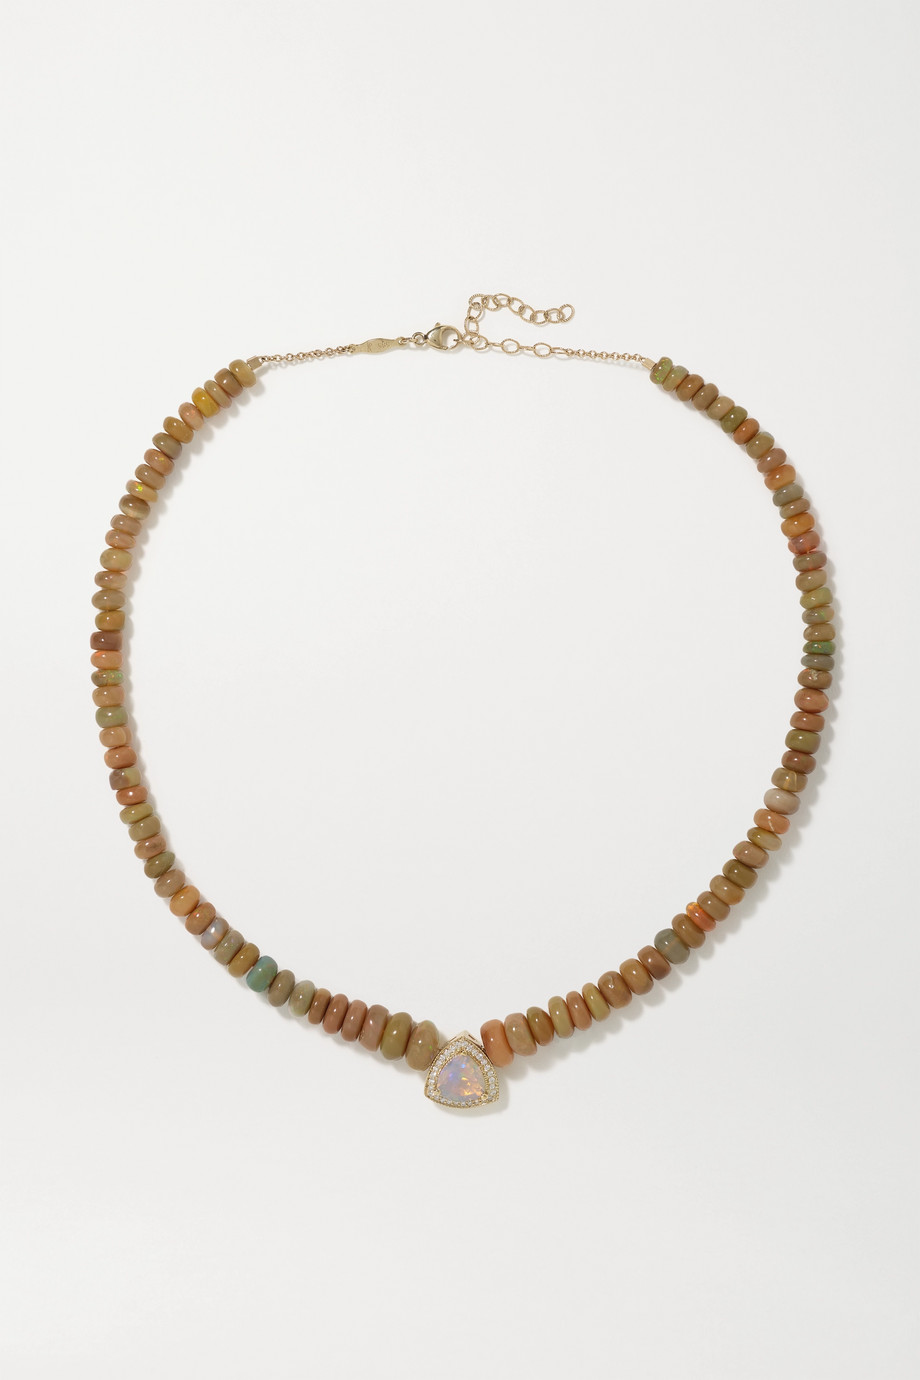 JACQUIE AICHE 14-karat gold, opal and diamond necklace